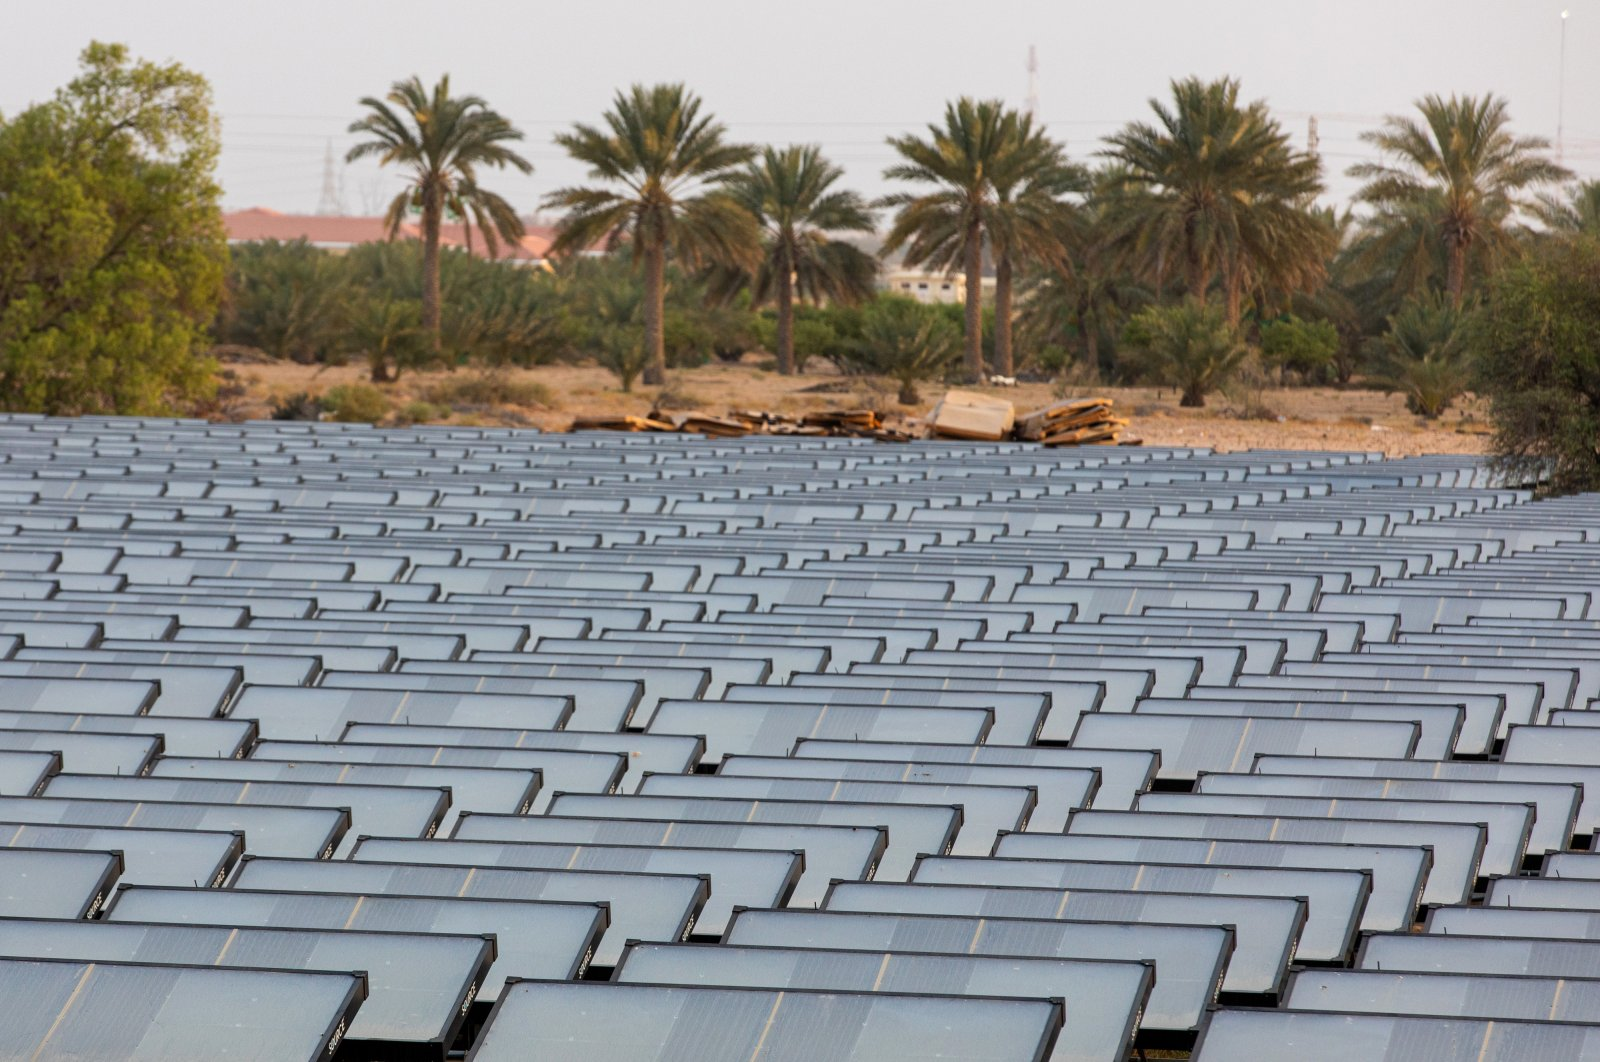 This file photo dated July 8, 2020, shows hydropanels, produced by Zero Mass Water Inc., at the planned site of the IBV drinking water plant in Lehbab, Dubai, United Arab Emirates, using technology to extract moisture from the atmosphere using energy from the sun. (Christopher Pike/Bloomberg via Getty Images)